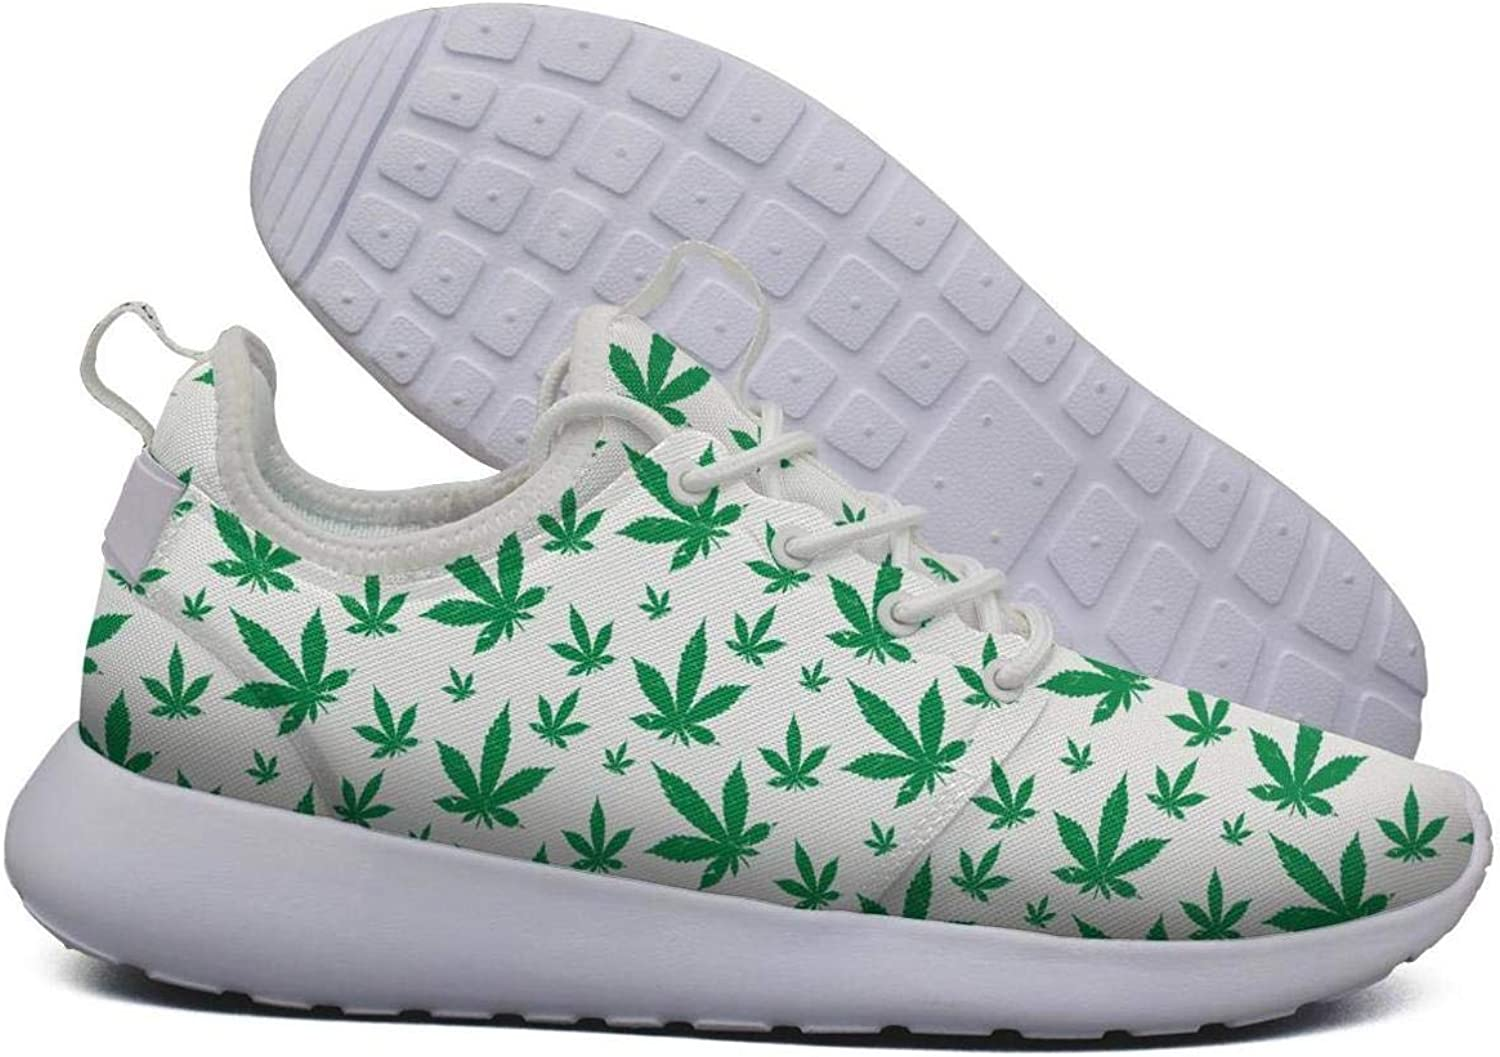 Hoohle Sports Womens Green Outdoor Cannabis Flex Mesh Roshe 2 Lightweight Cute Road Running shoes